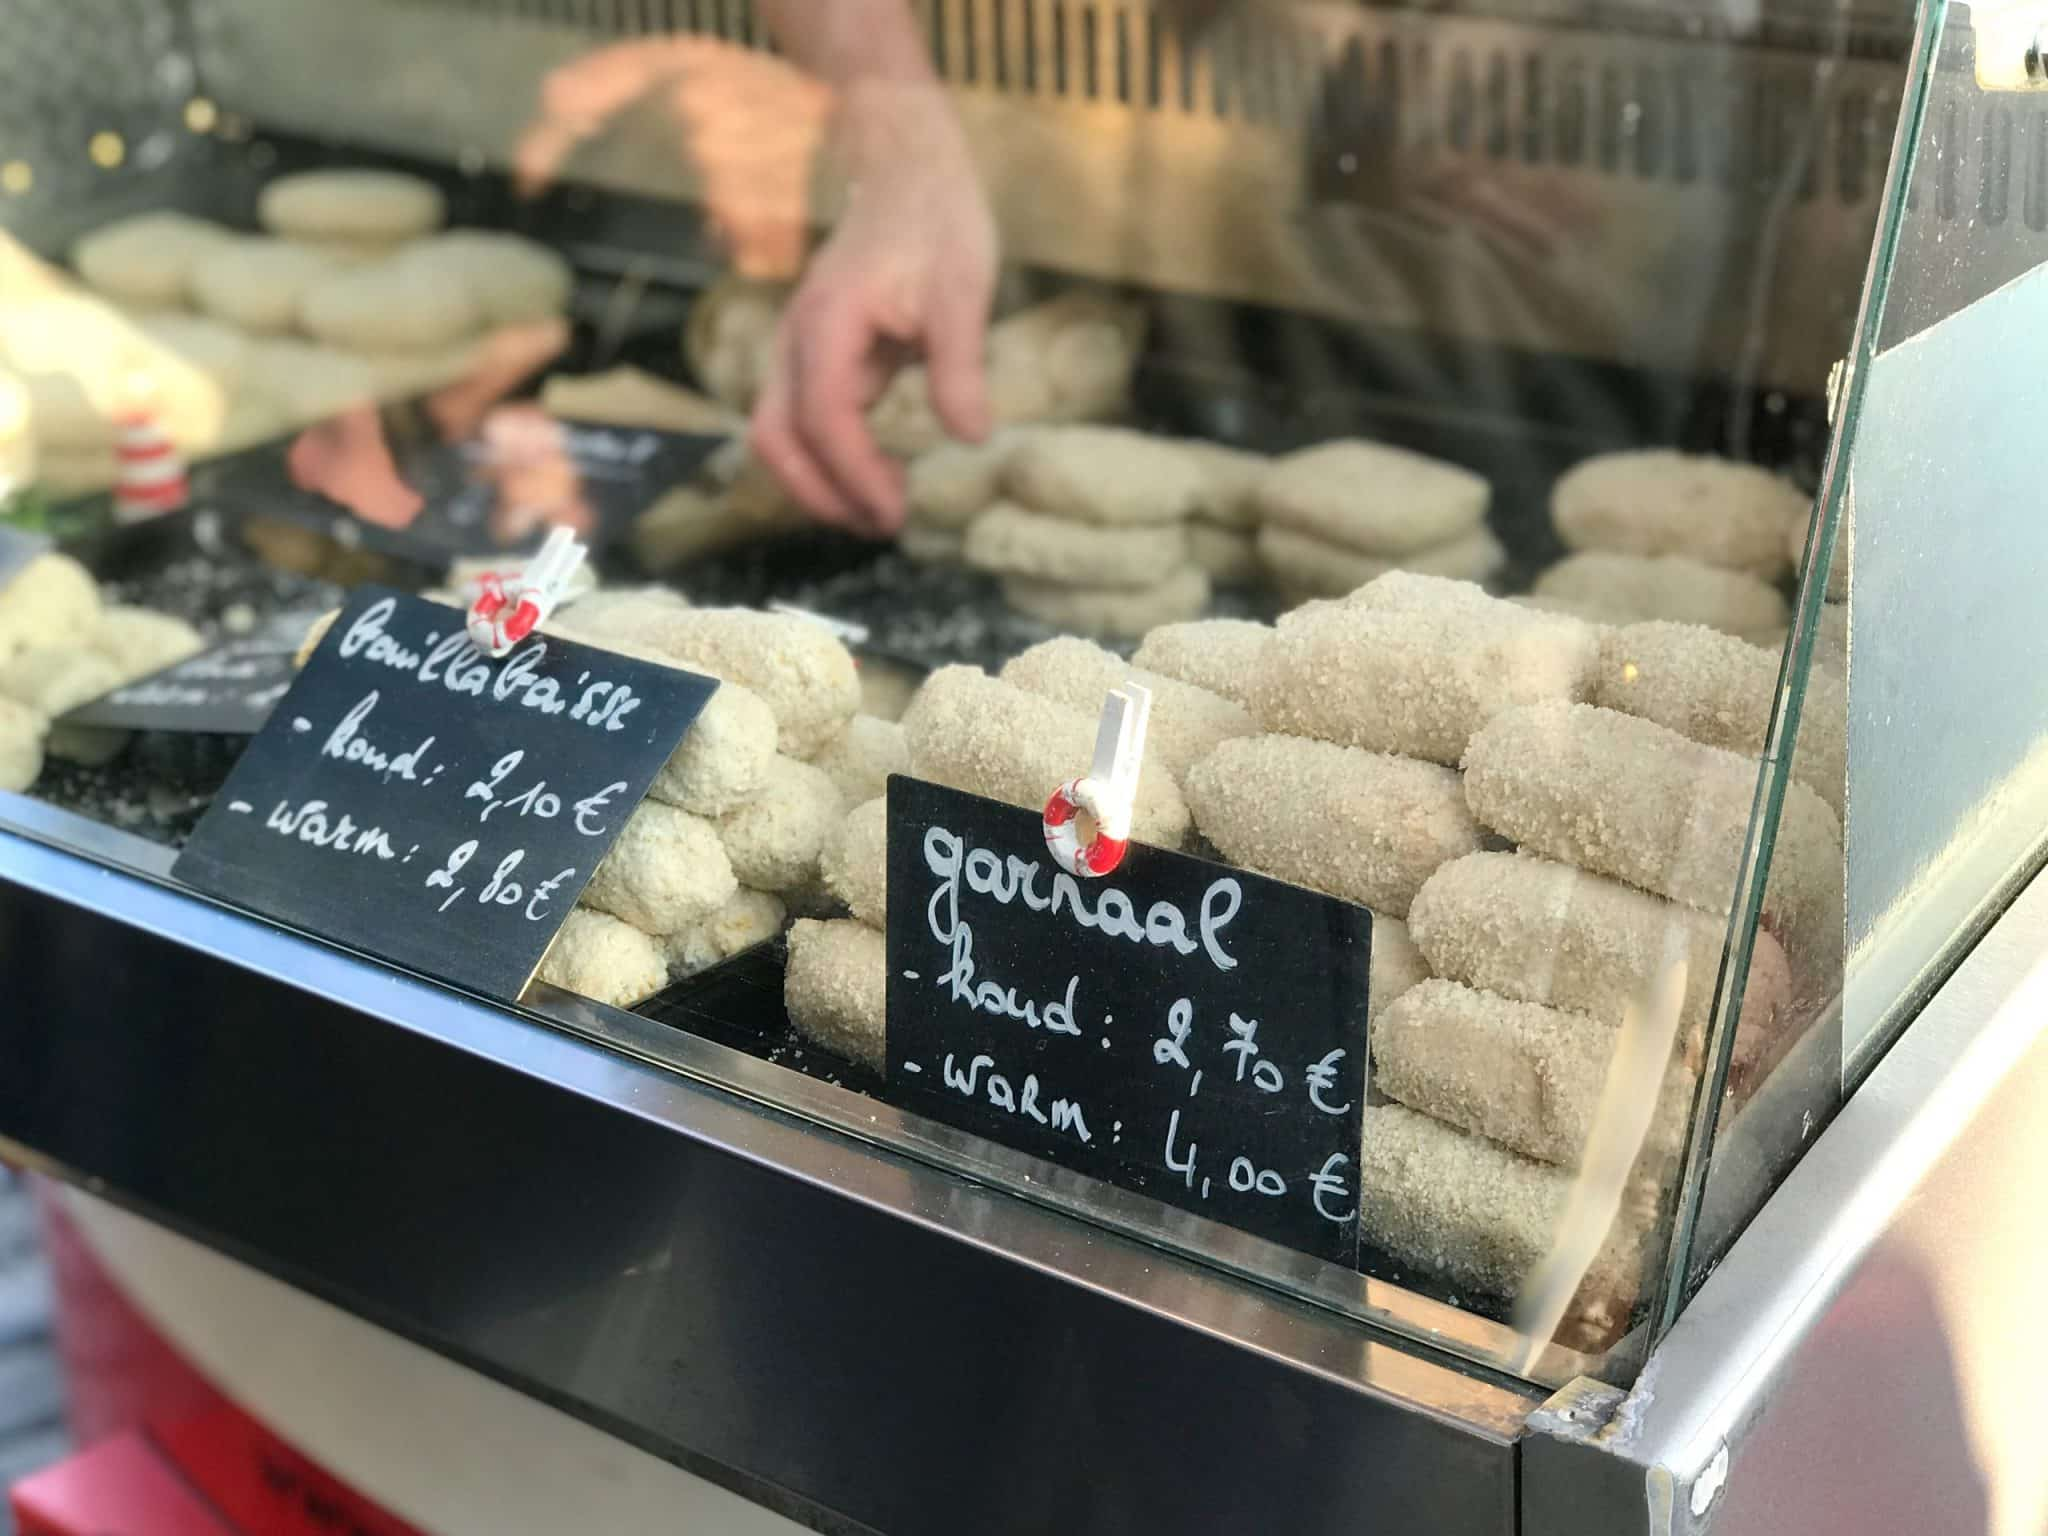 A funky taste test of a Belgian classic! Where to buy a good shrimp croquette in Antwerp? Let's find out!